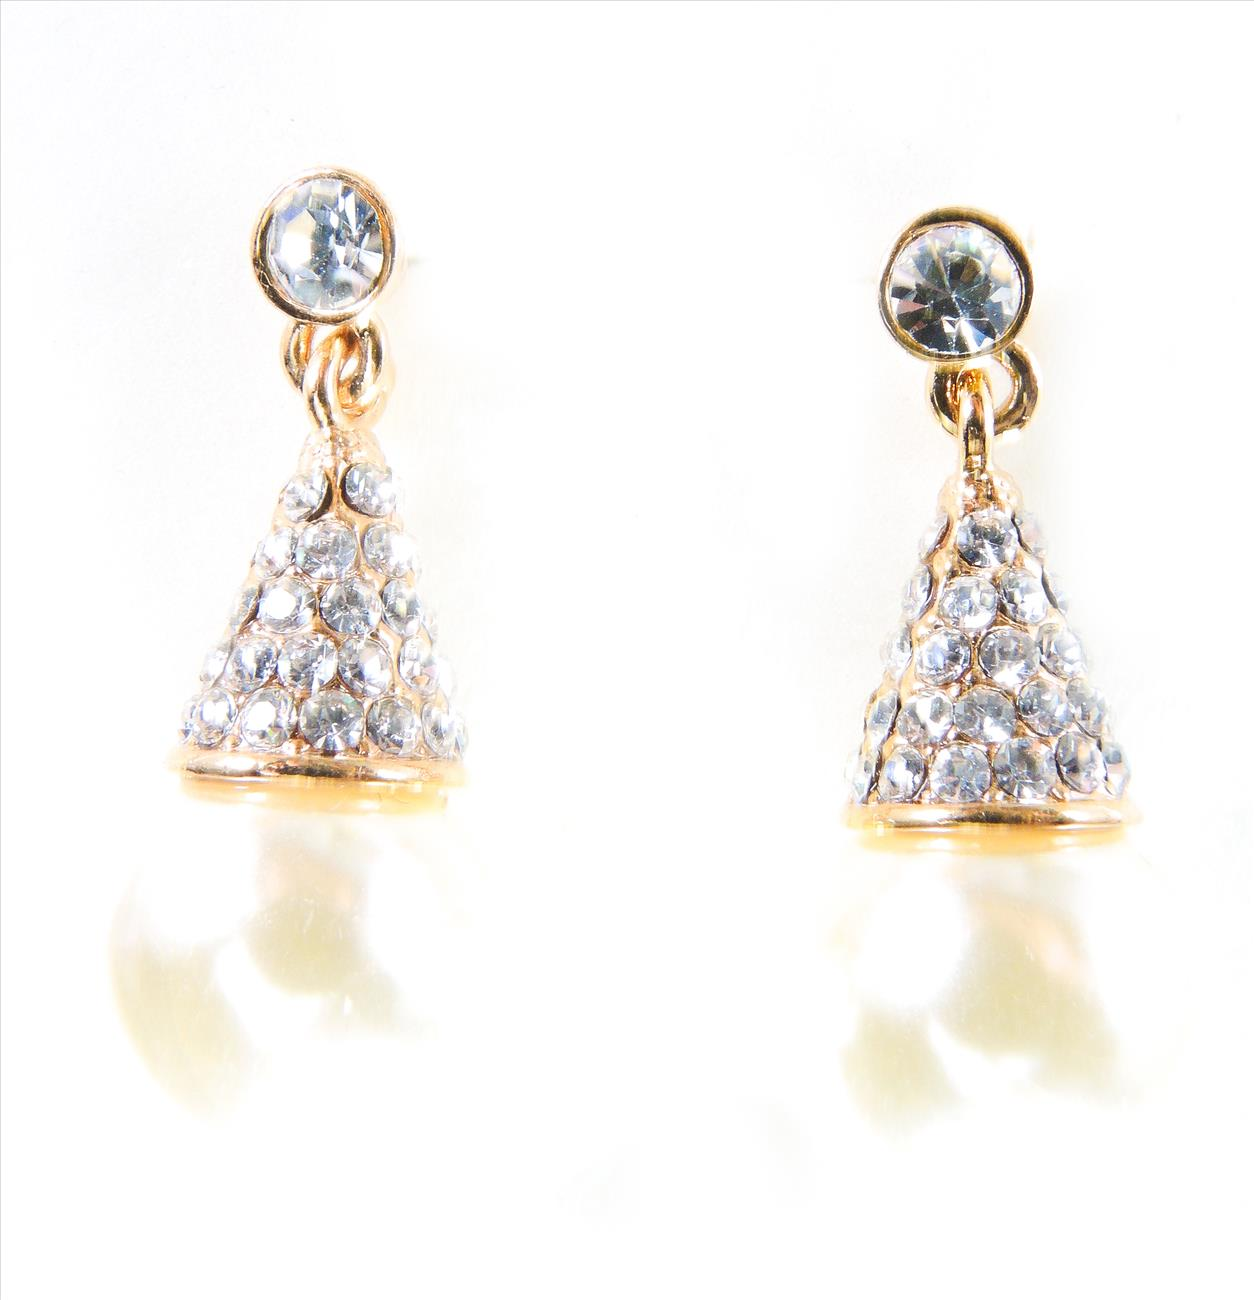 SWAROVSKI Earring 18K white gold plated with Crystal Pearl